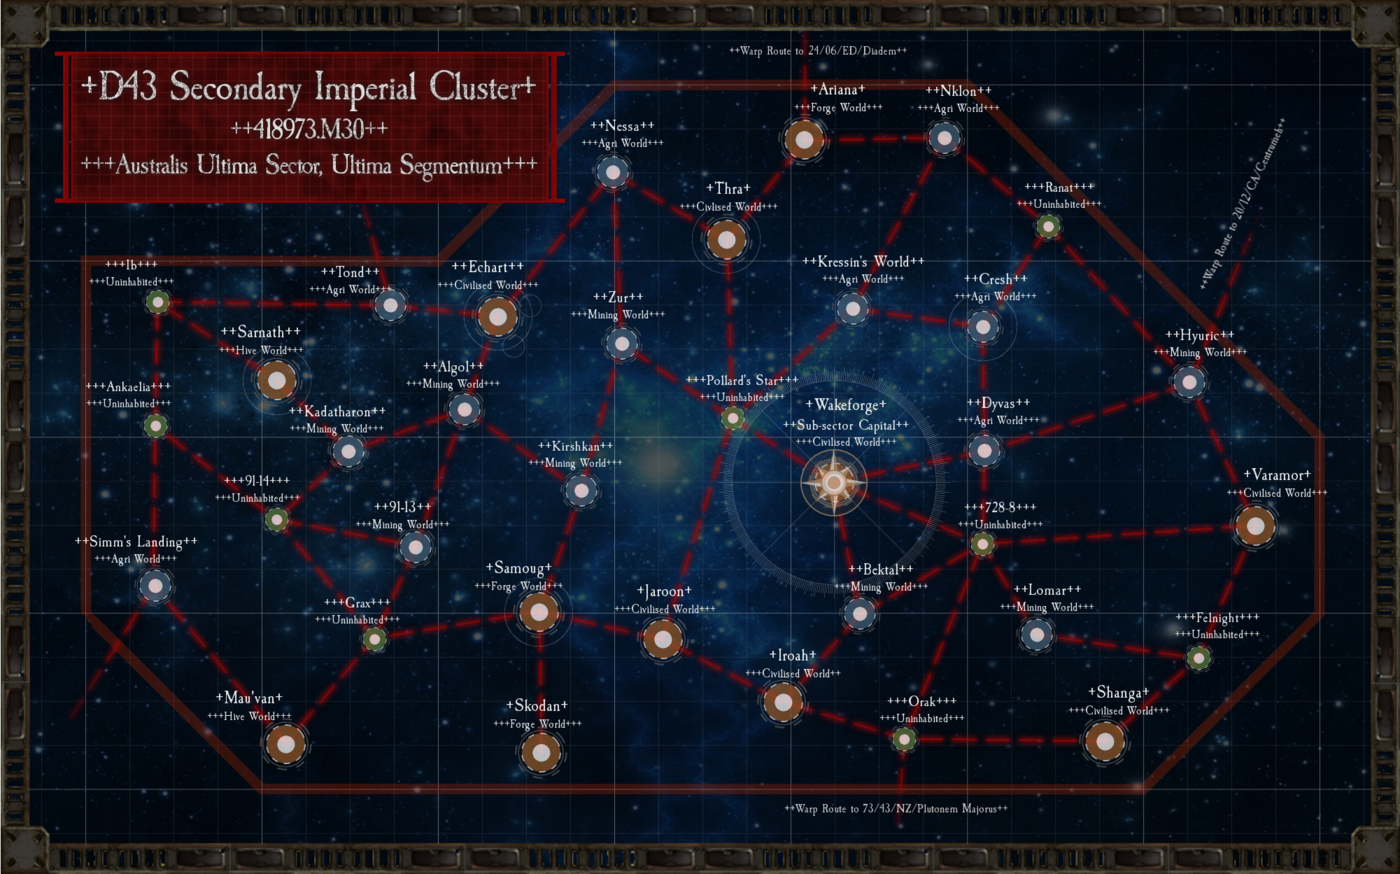 D43 Secondary Imperial Cluster Sub-Sector